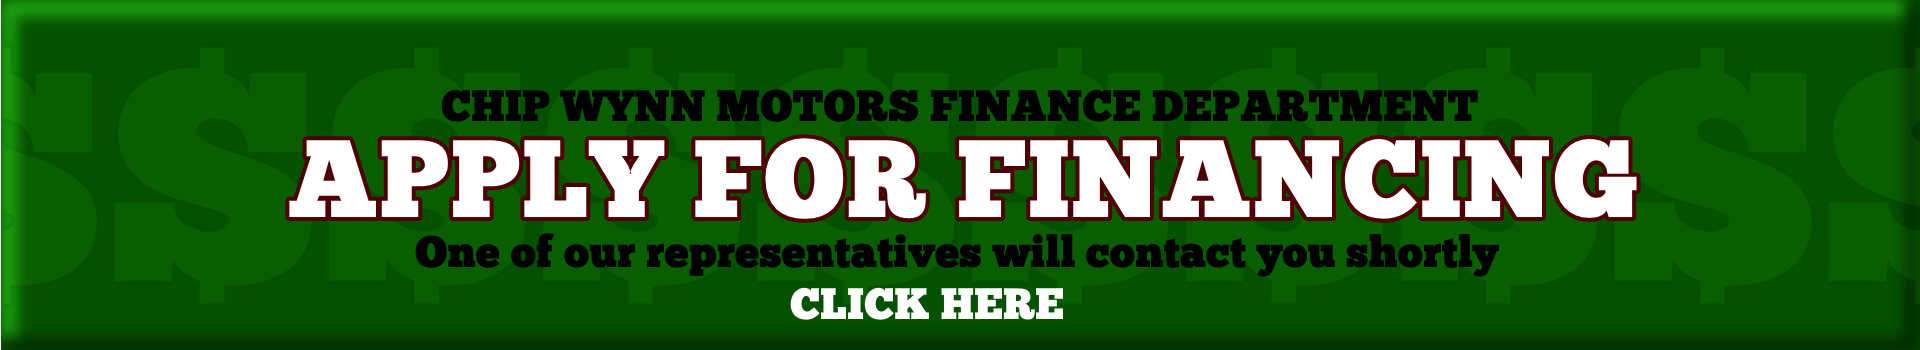 apply for finance button banner.png